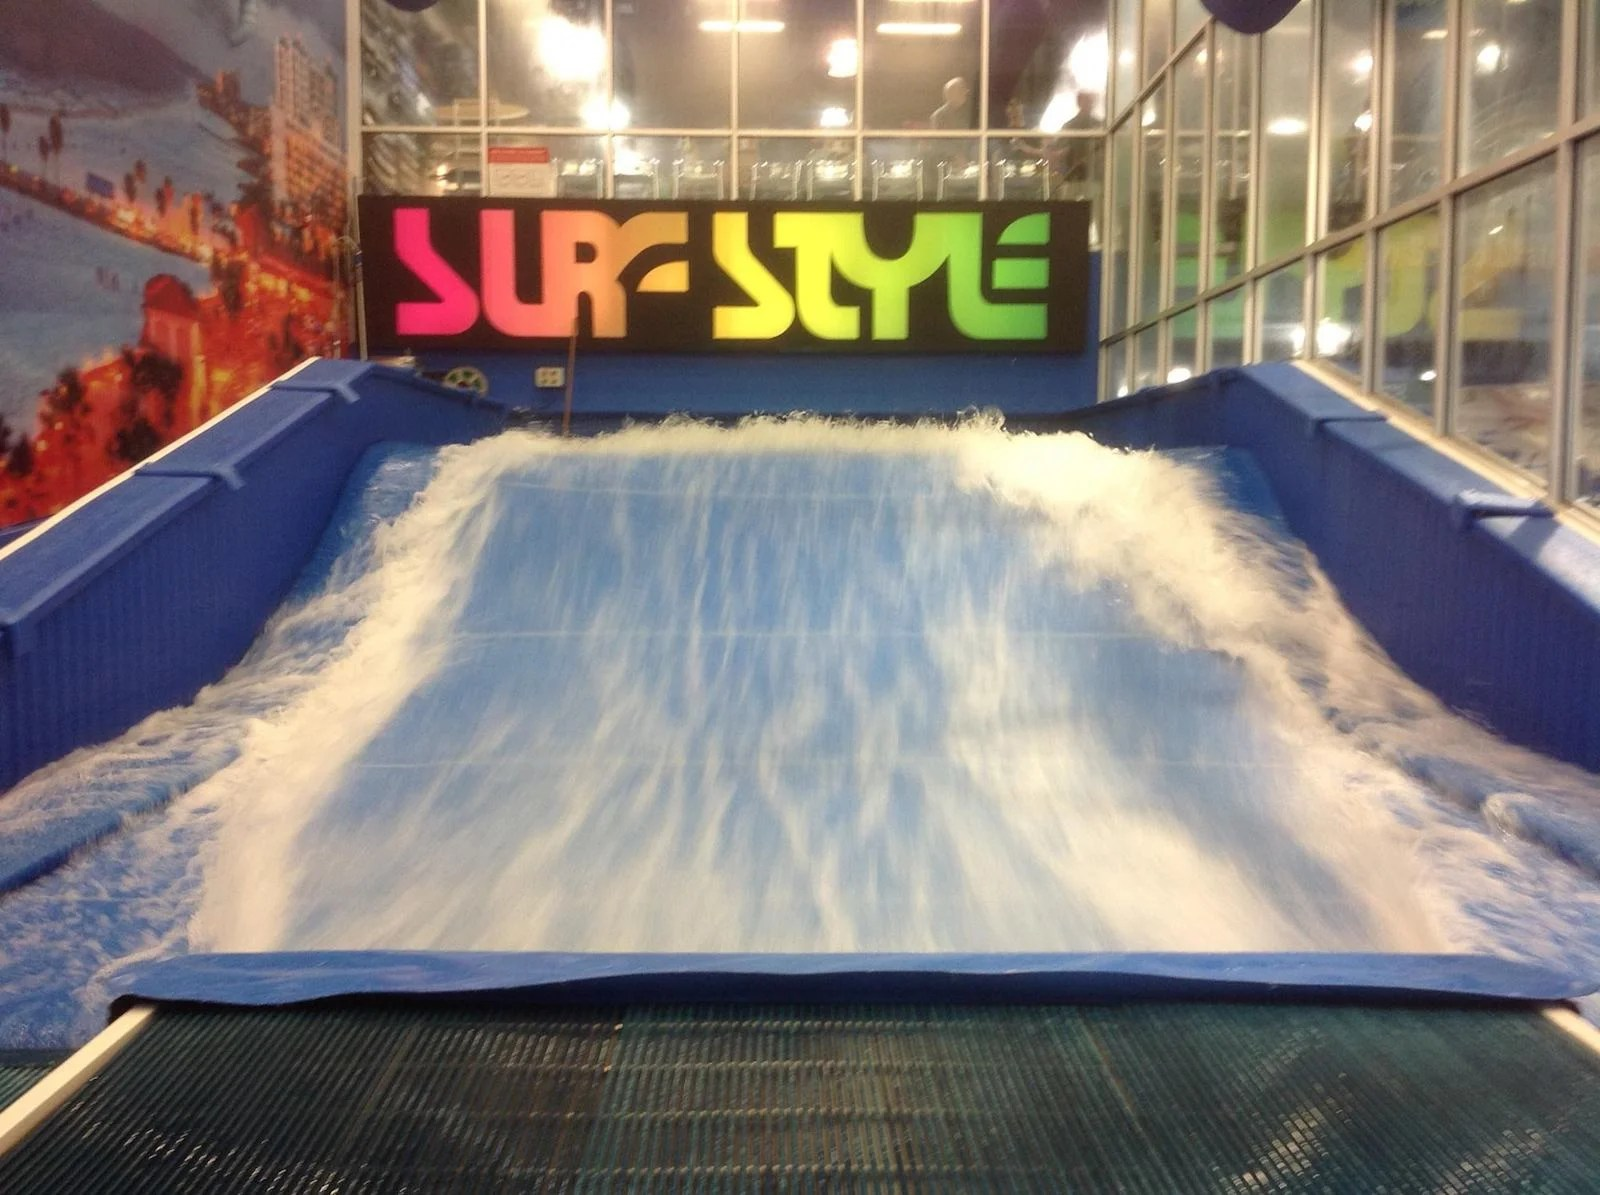 The Flow Rider Surfing Simulator. (Photo courtesy of Visit Clearwater Beach / Facebook)